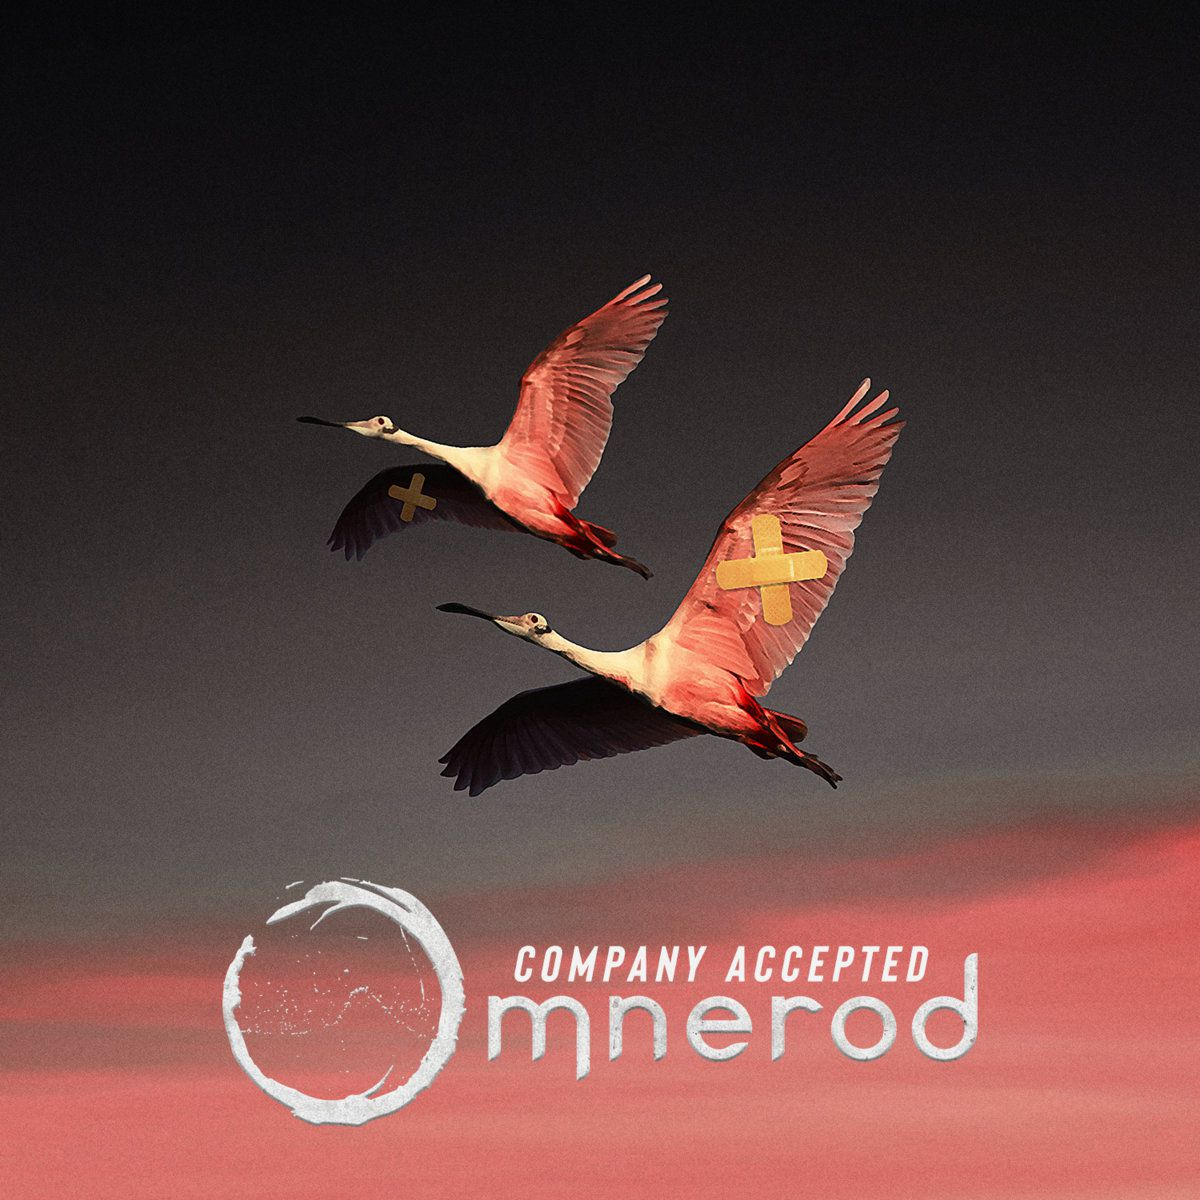 🎵 'Company accepted' - New release from OMNEROD